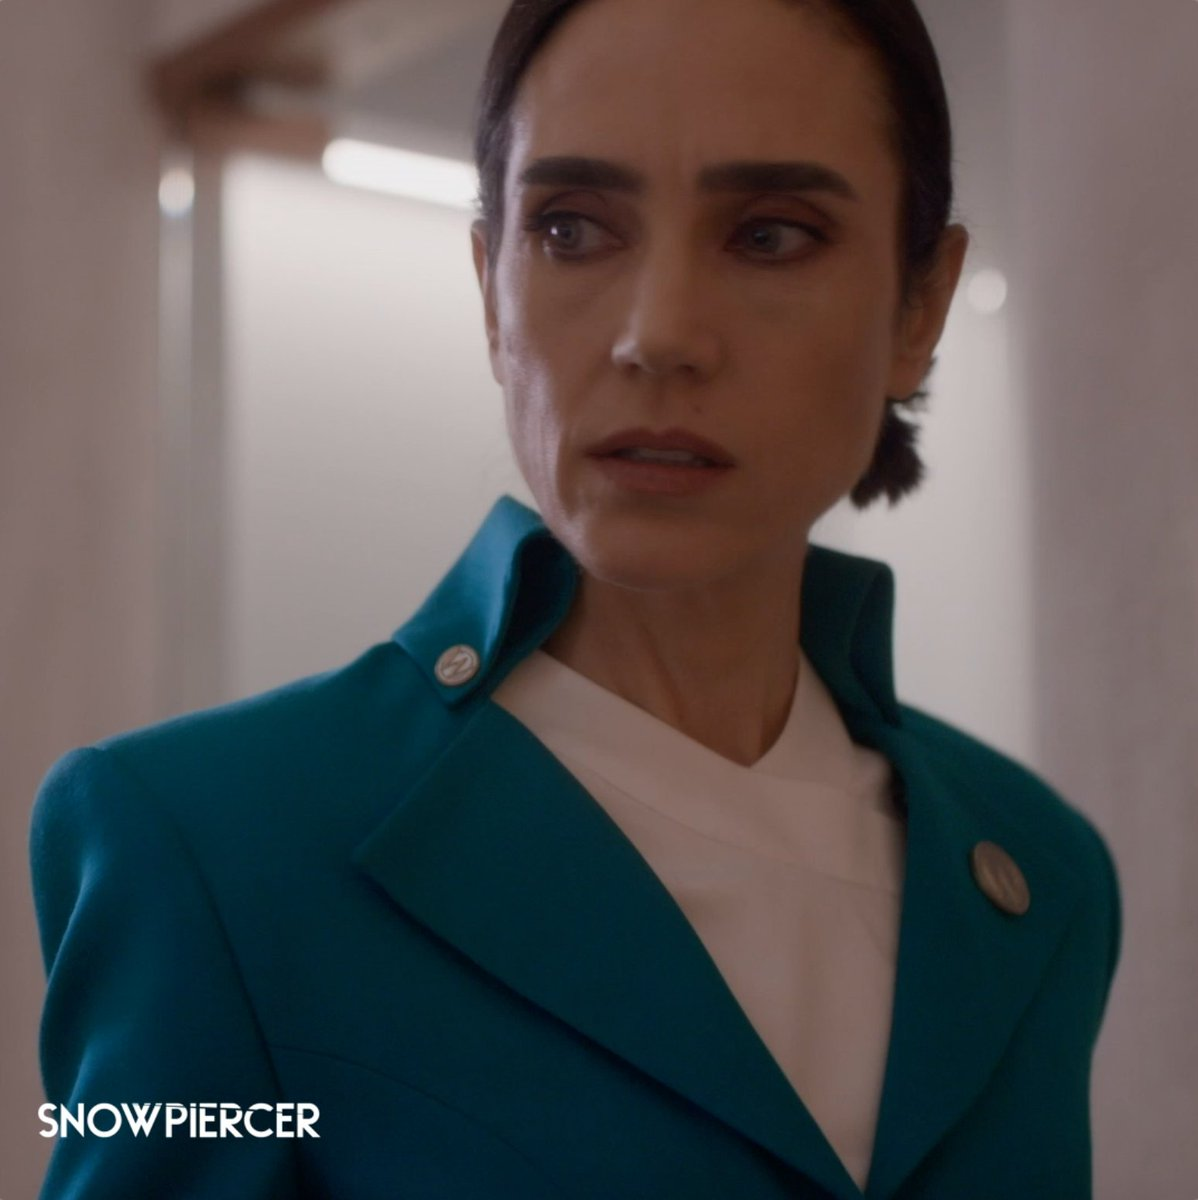 Climb aboard this post-apocalyptic thriller for the ride of a lifetime 🚅 Stream Season 1 of @SnowpiercerTV starring Jennifer Connelly and Daveed Diggs now on HBO Max.